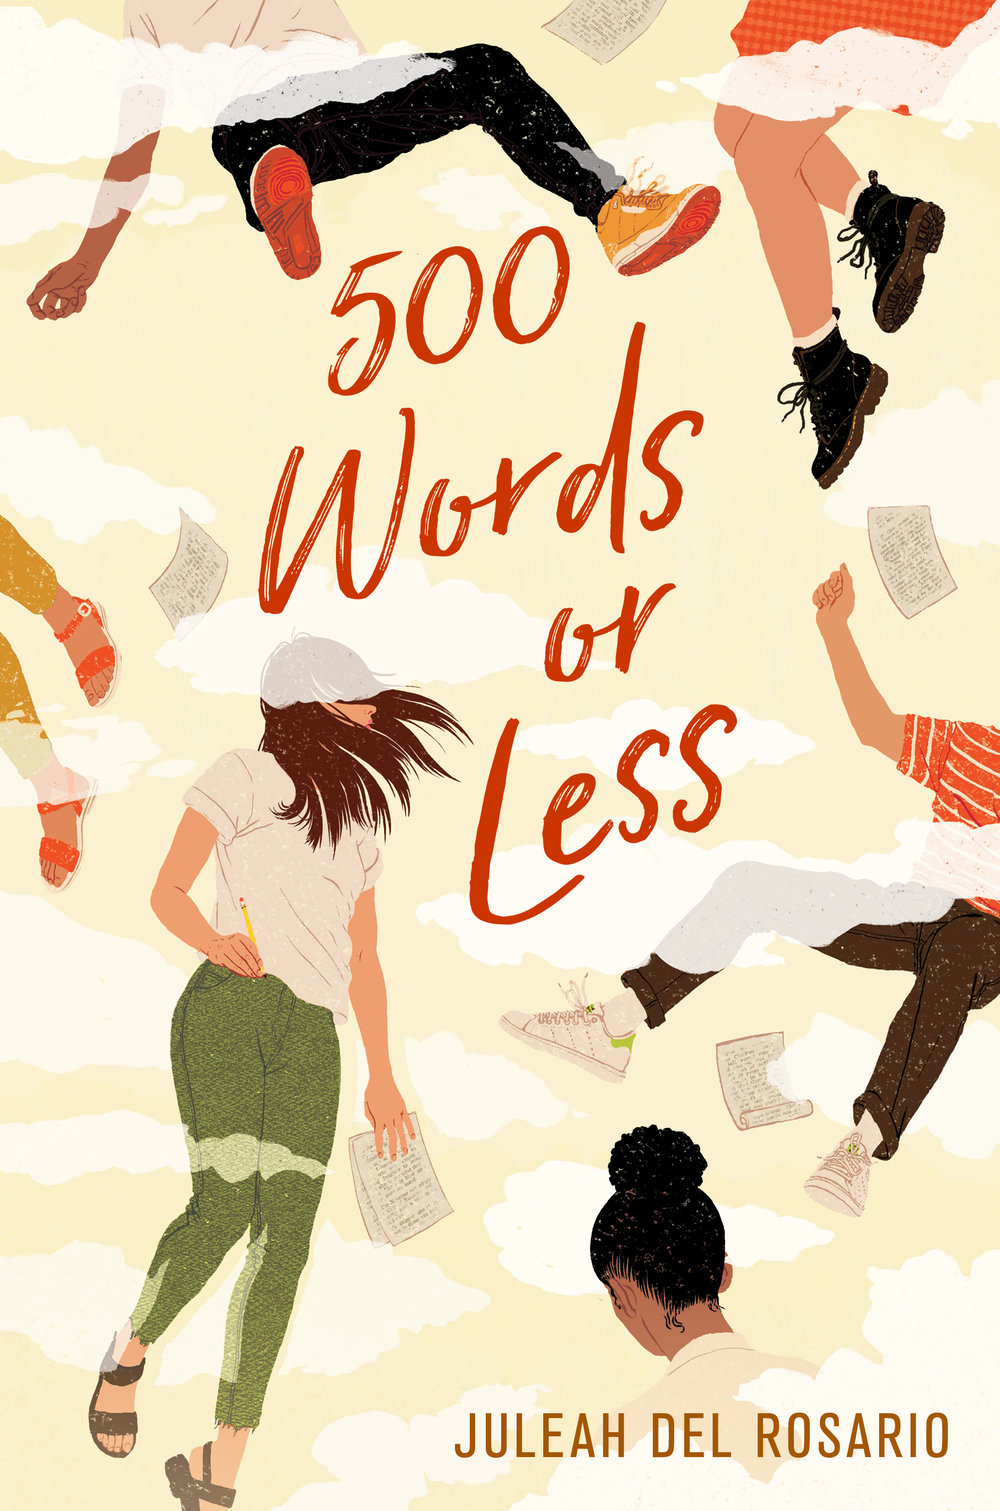 500 Words or Less - Nic Chen refuses to spend her senior year branded as the girl who cheated on her charismatic and lovable boyfriend. To redefine her reputation among her Ivy League–obsessed classmates, Nic begins writing their college admissions essays.But the more essays Nic writes for other people, the less sure she becomes of herself, the kind of person she is, and whether her moral compass even points north anymore.Provocative, brilliant, and achingly honest, 500 Words or Less explores the heartbreak and hope that marks the search for your truest self.Available through: Amazon, IndieBound, Barnes & NobleFind it at your libraryAdd it to Goodreads